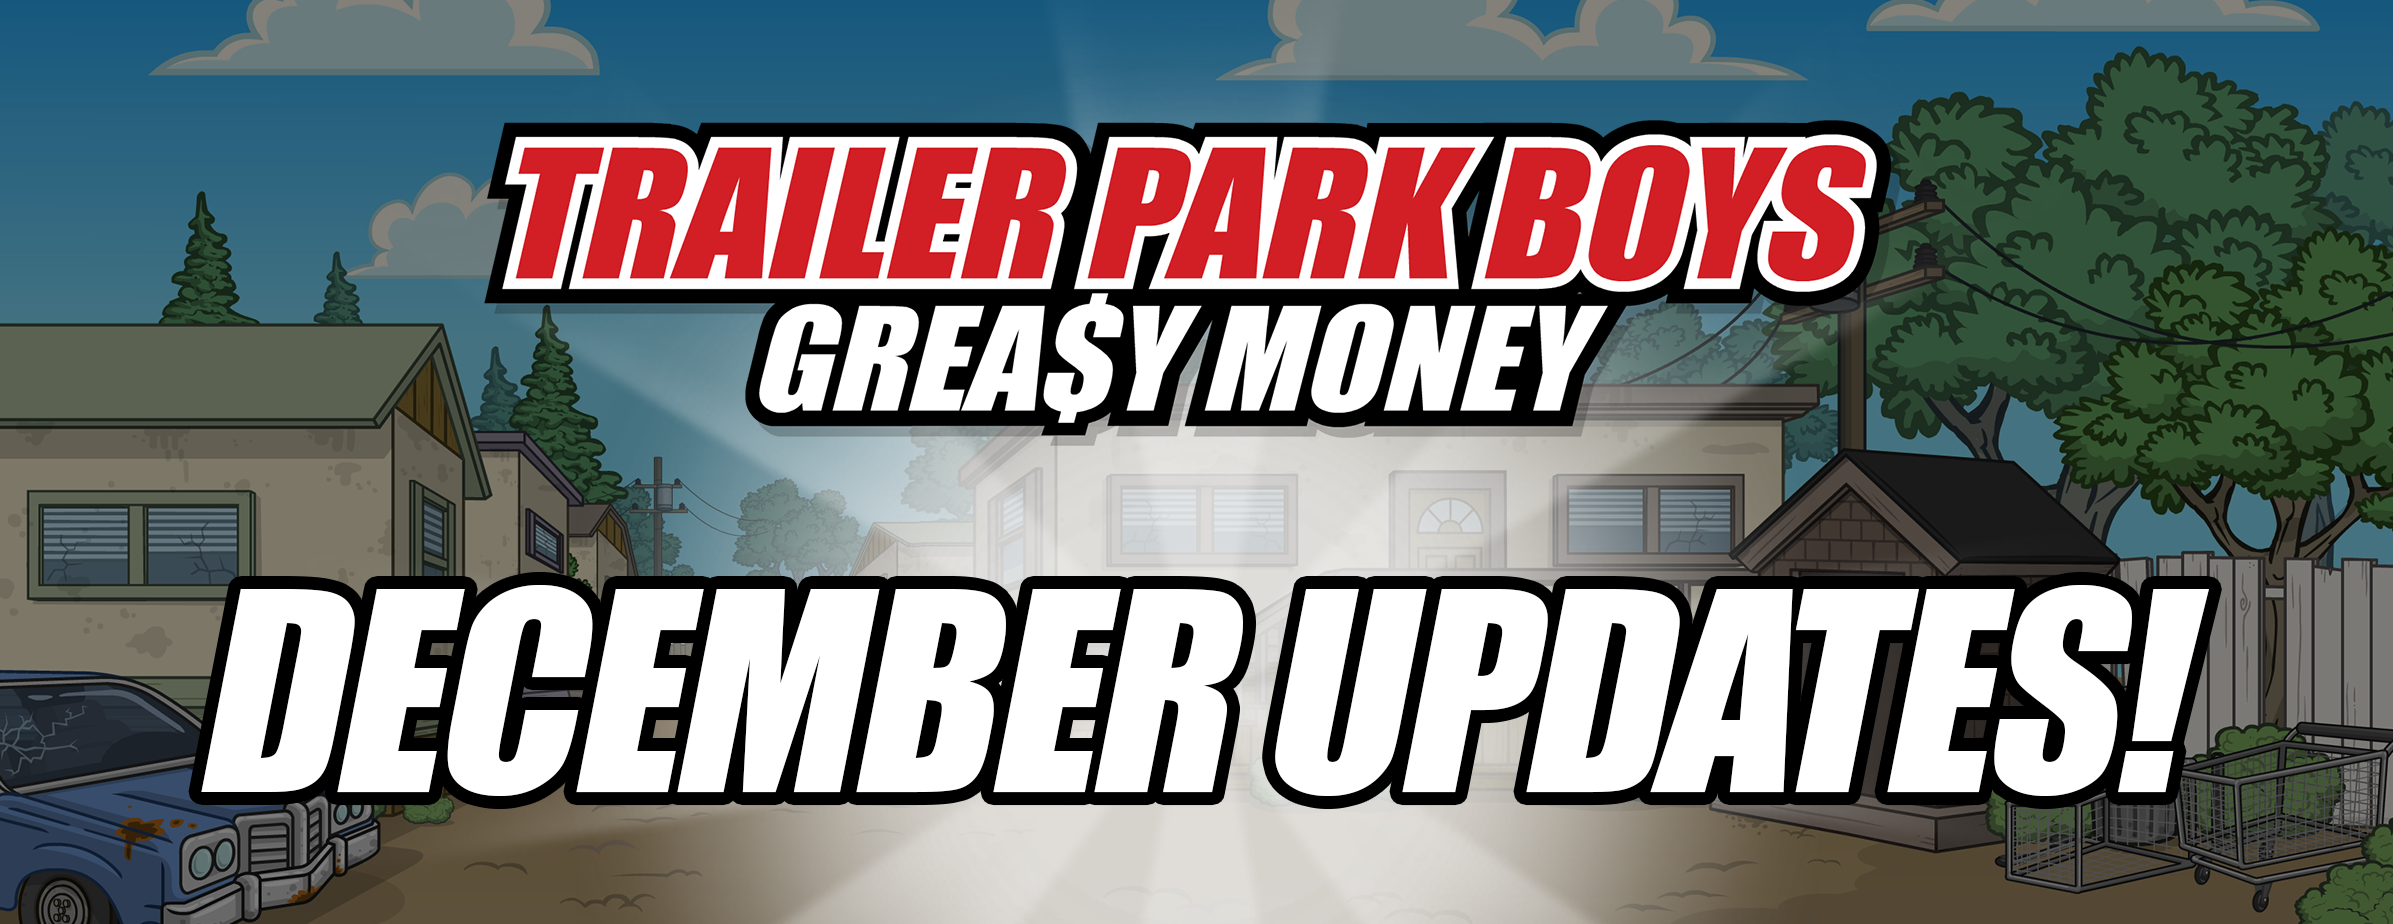 Trailer Park Boys: December Events!